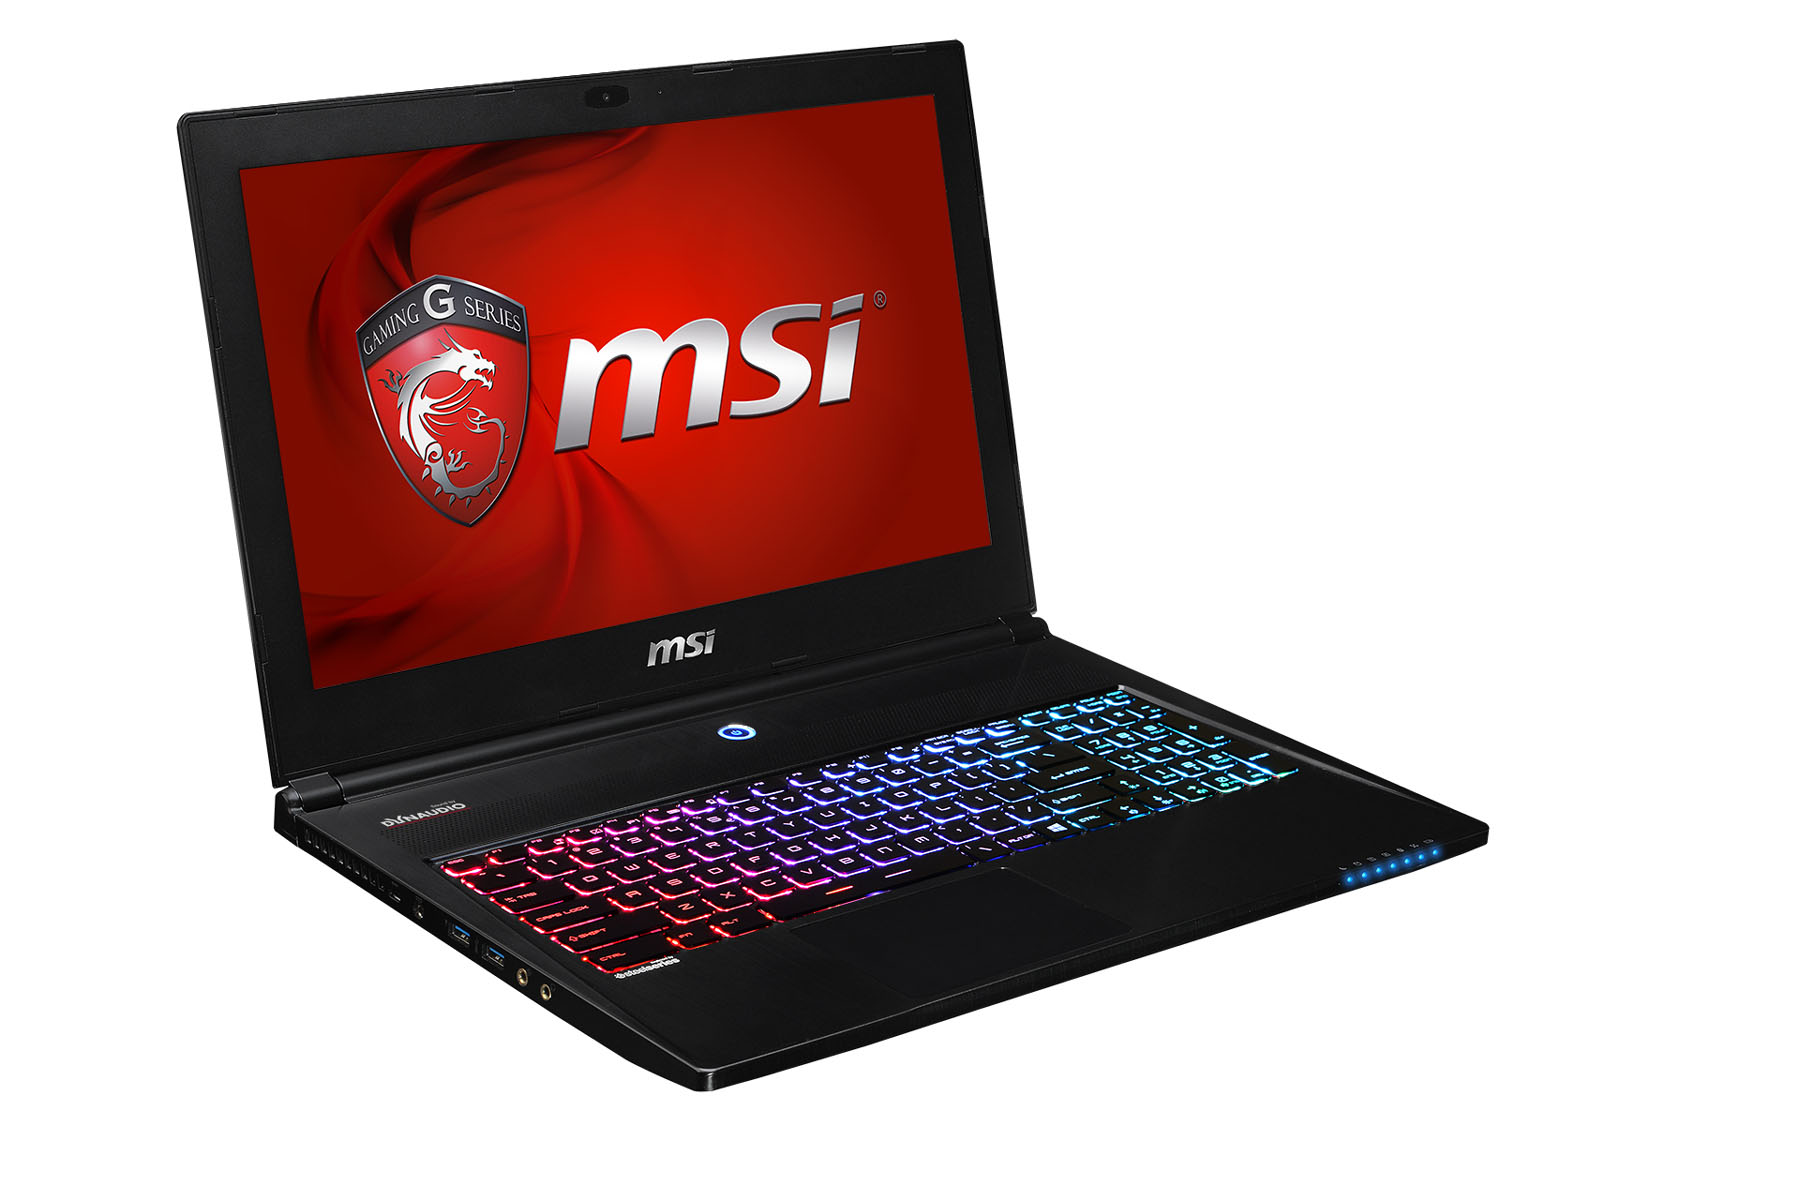 Laptop MSI GS60 2PE Ghost Pro 9S7-16H212-466